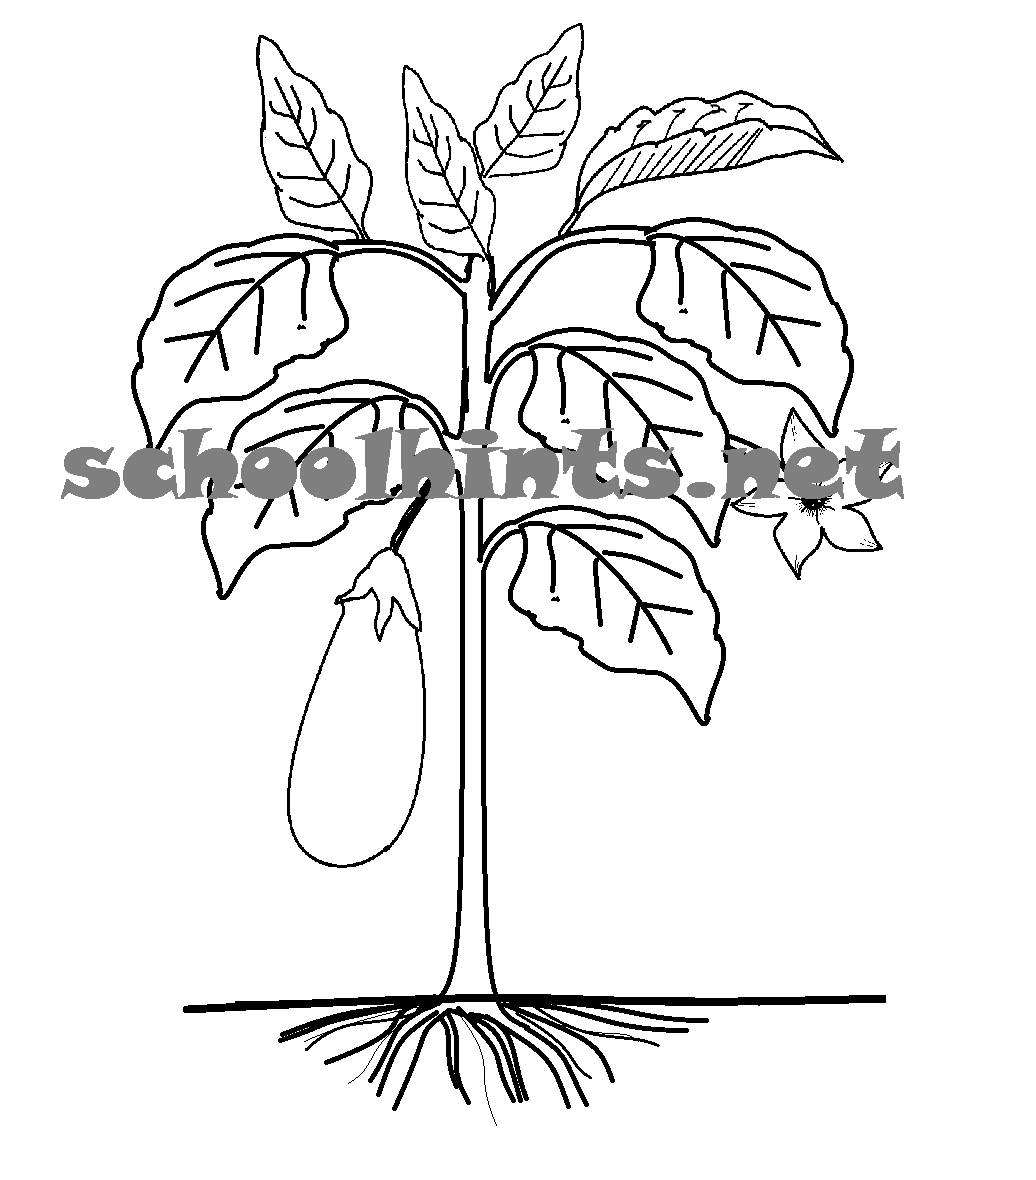 A Plant Has Parts That Help It Grow A Plant Has Roots Stem Flowers Fruits Seeds And Leaves